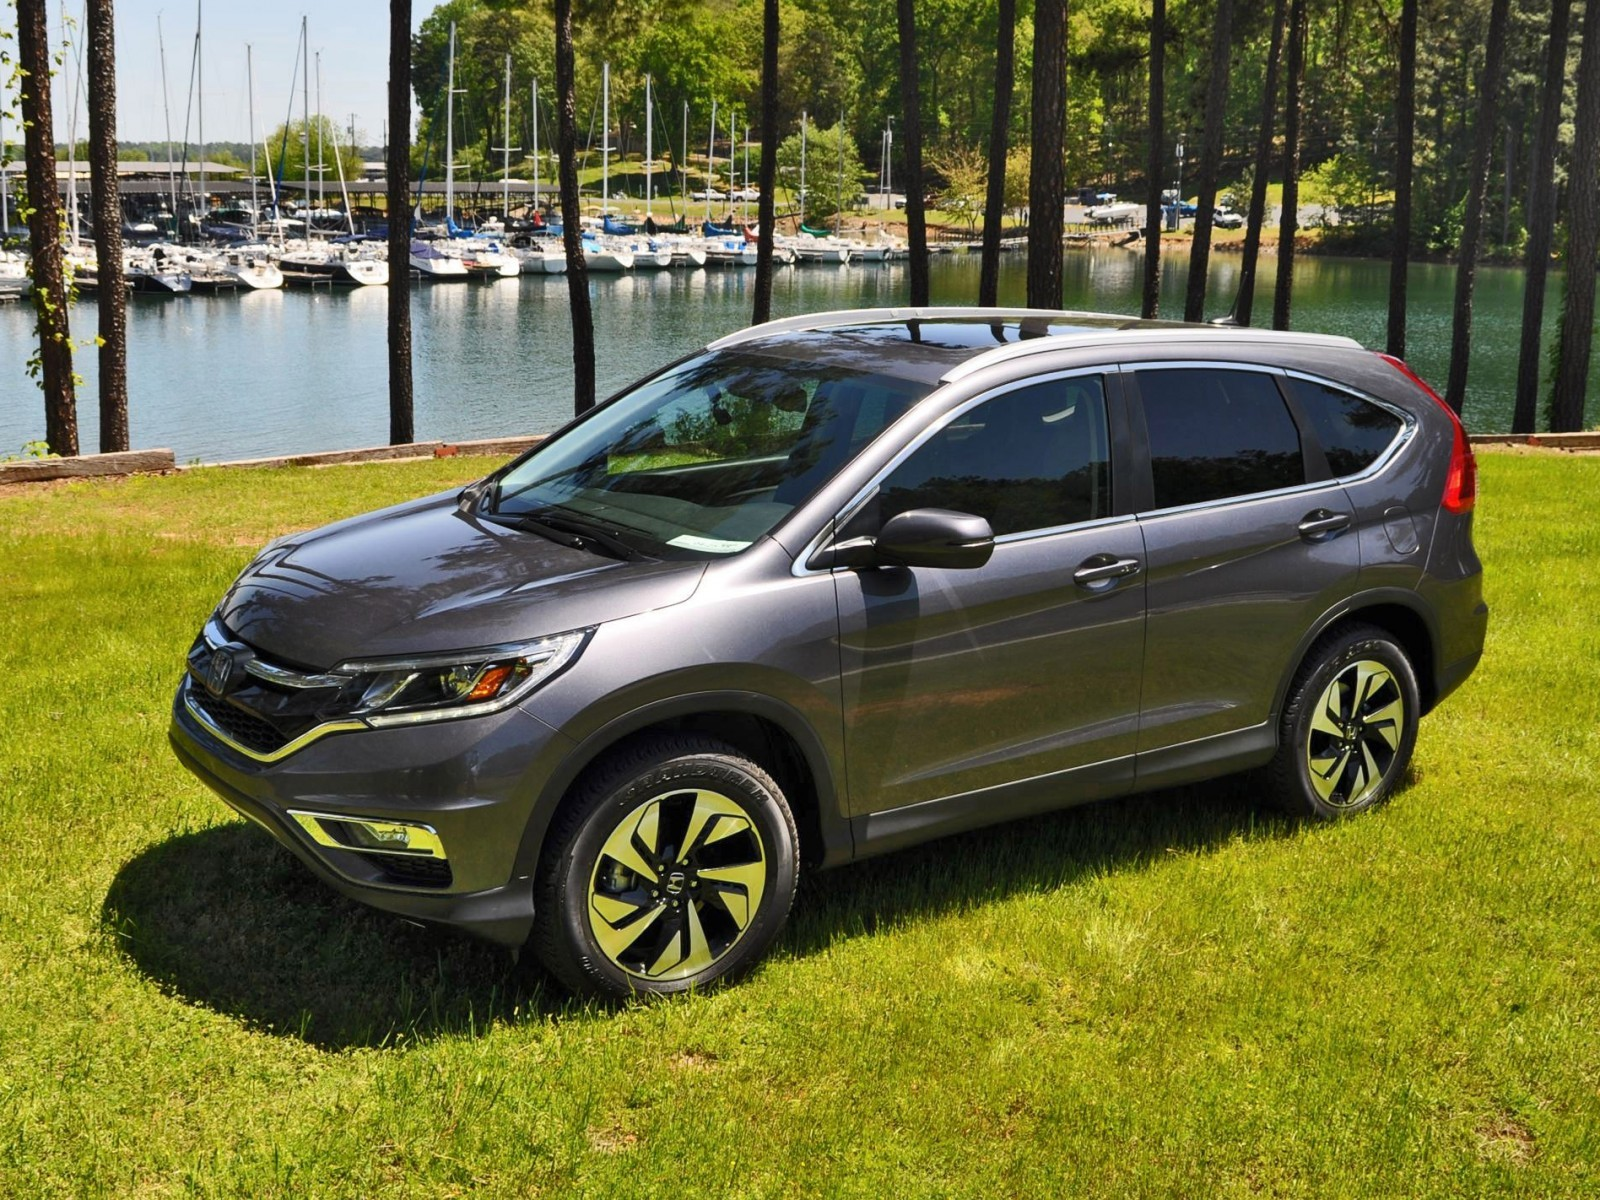 2015 honda cr v touring awd review 61. Black Bedroom Furniture Sets. Home Design Ideas